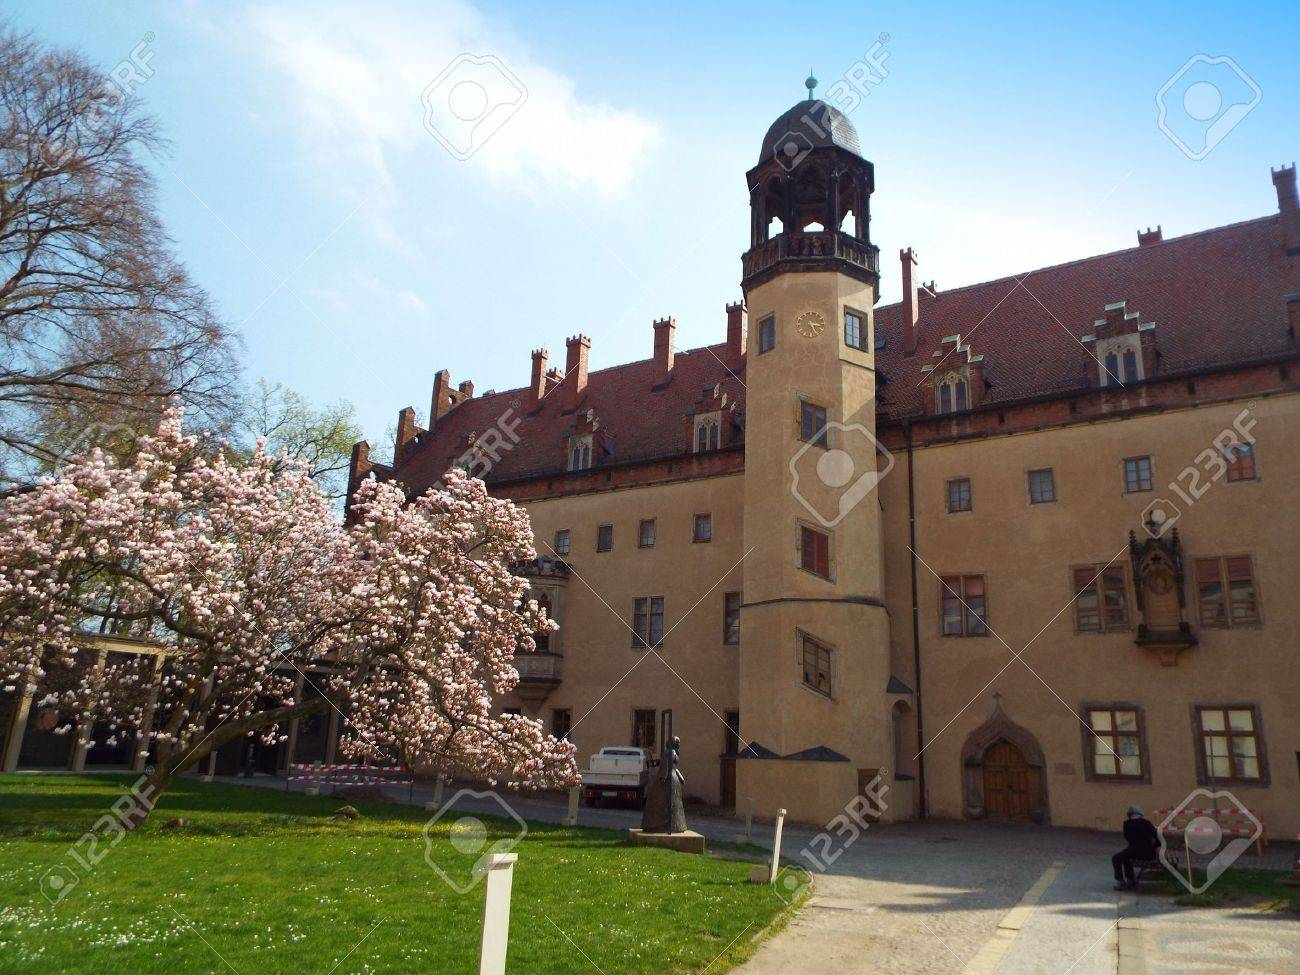 Luther-house where Martin Luther lived and taught, Wittenberg, Germany 04.12.2016 At the door of the Castle Church in Wittenberg reformer Martin Luther nailed his 95 theses. By Luther and Melanchthon, the Wittenberg wurde the center of the Reformation. - 57541747